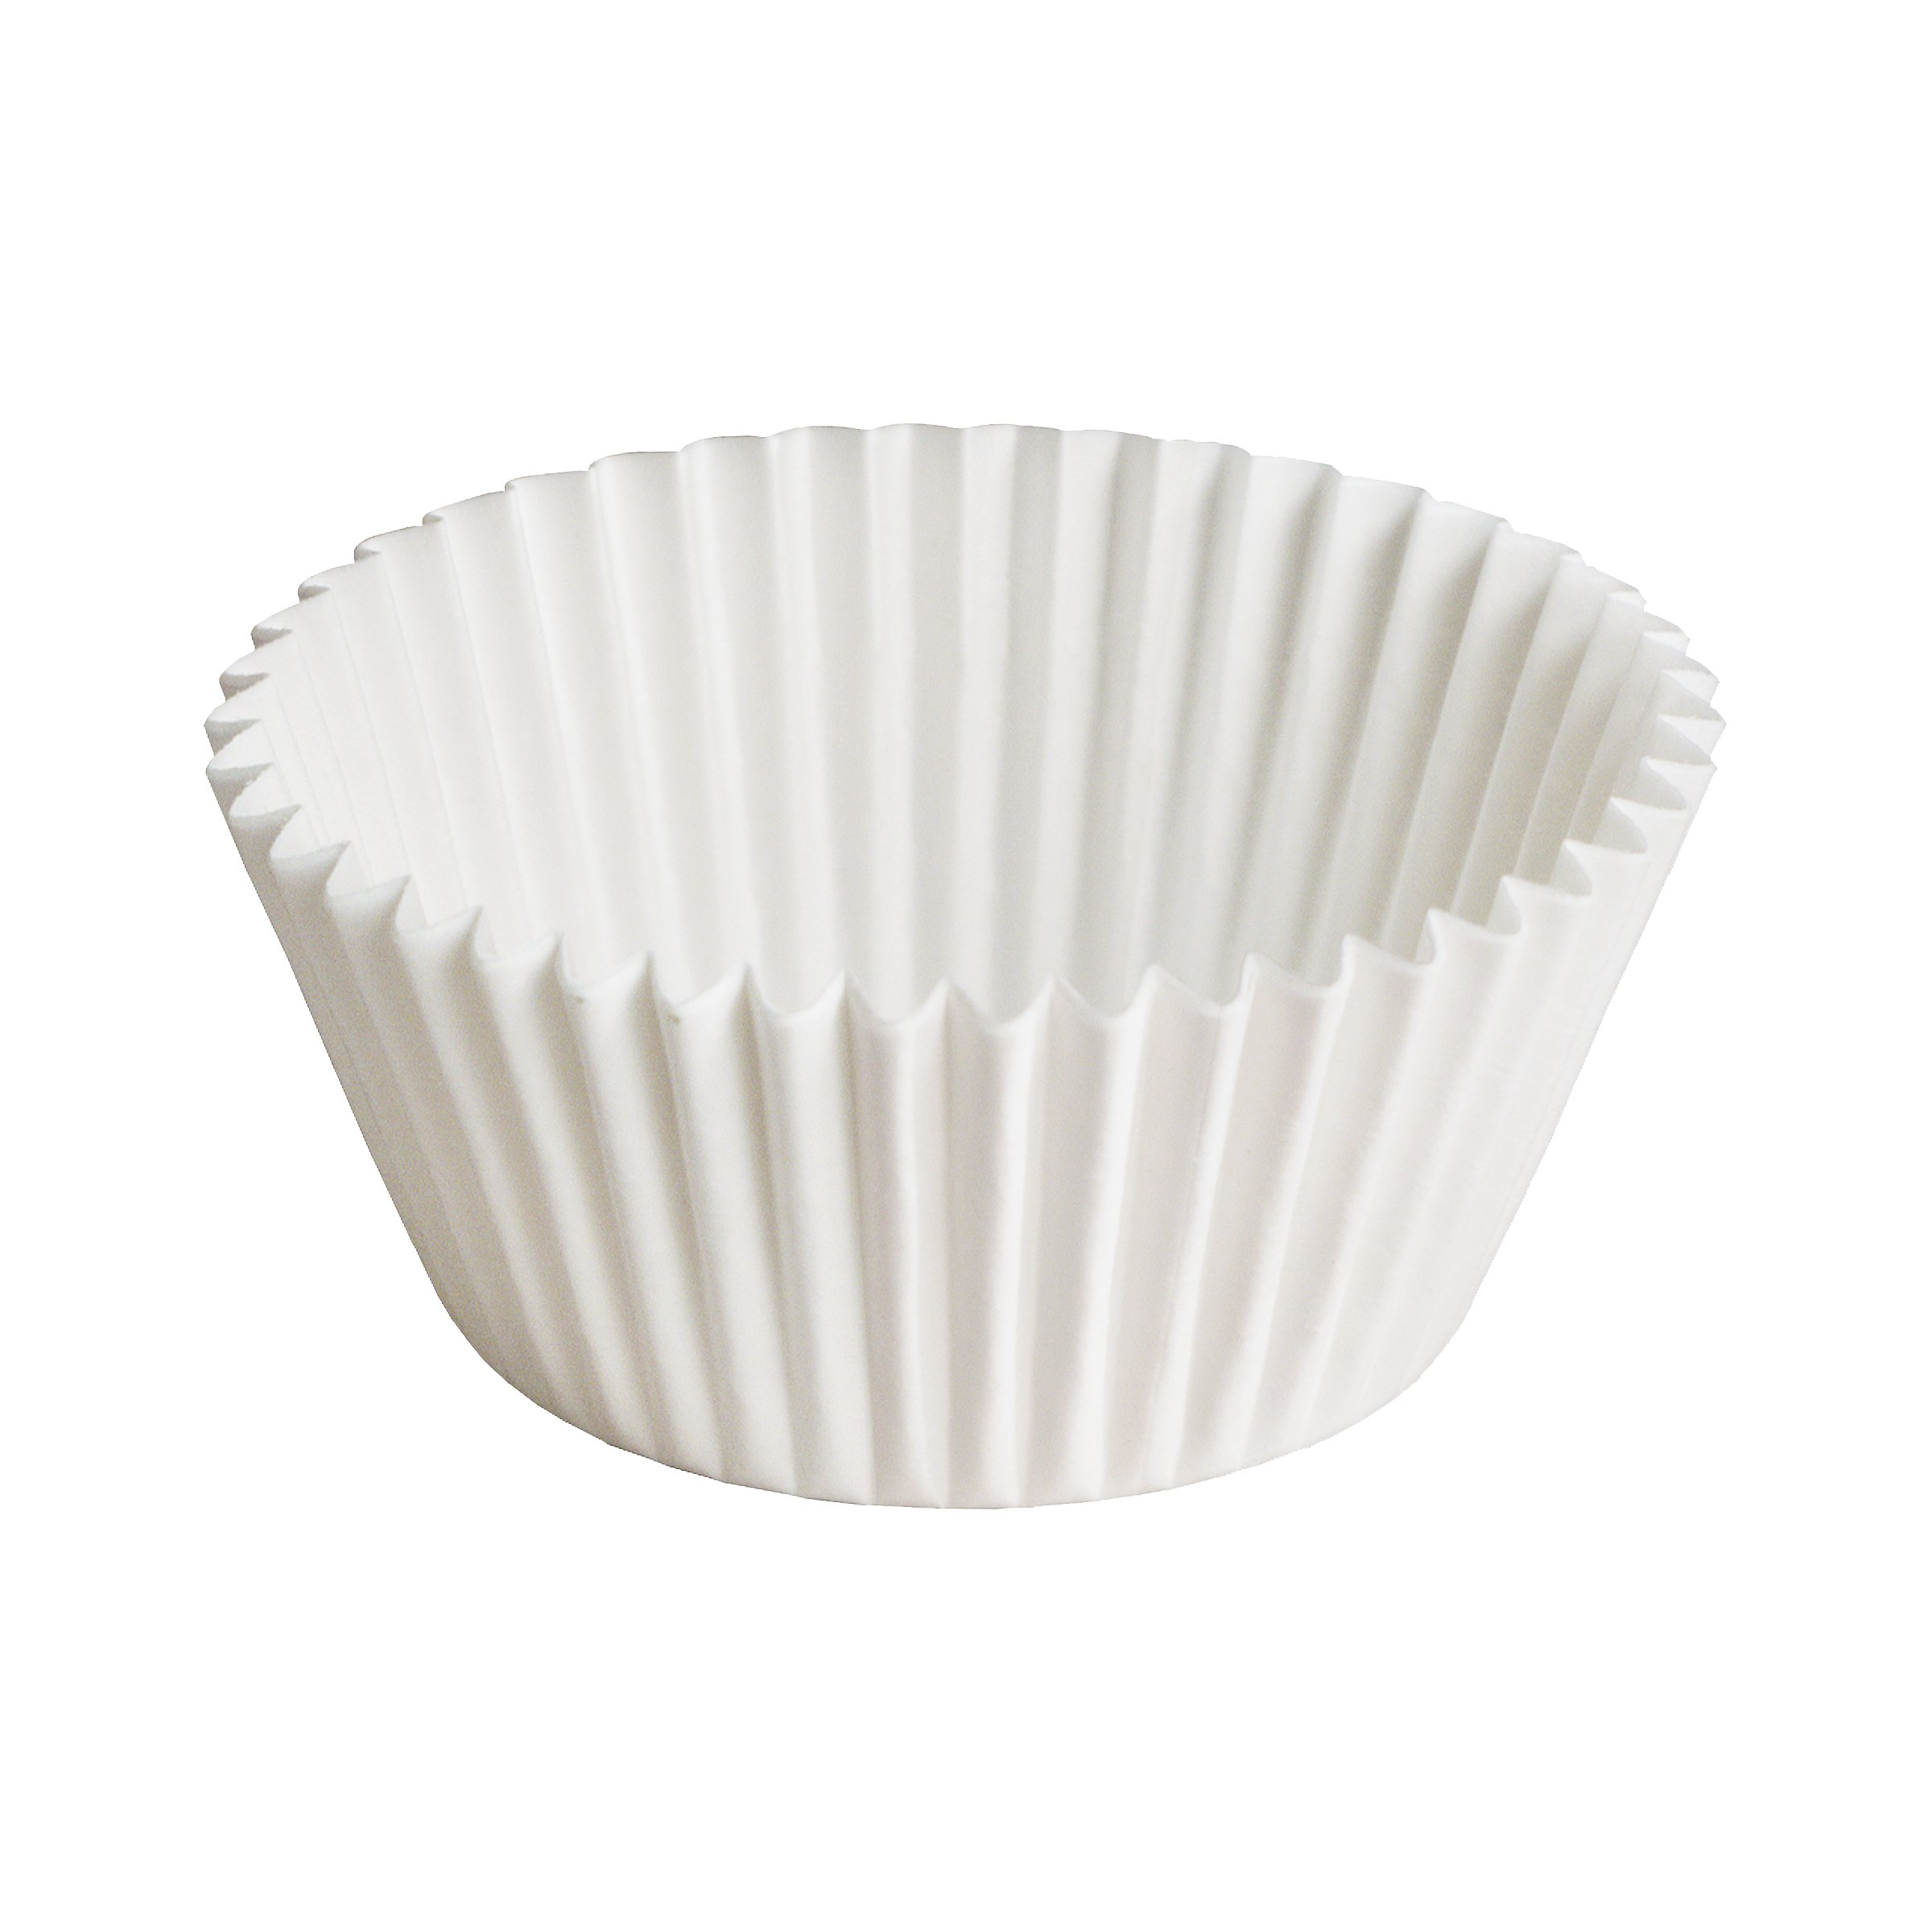 Hoffmaster 610515 Fluted Bake Cup, Zip Pack, 1.5'' Base x 1'' Height, White (Pack of 10000)